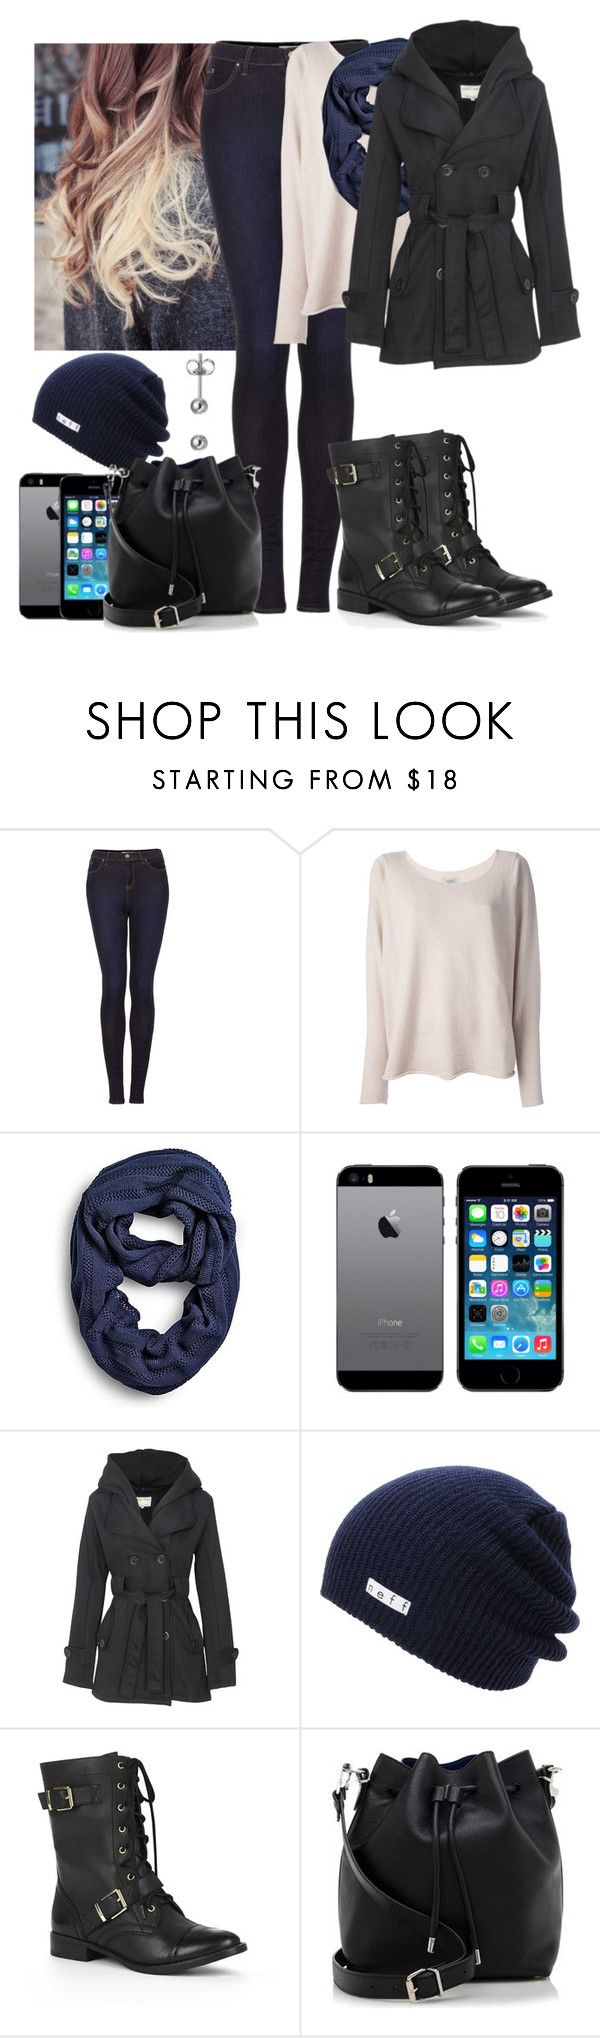 """Sem título #1146"" by esther-rosa ❤ liked on Polyvore featuring Topshop, Hunkydory, Sperry, Neff, Sole Society and Proenza Schouler"